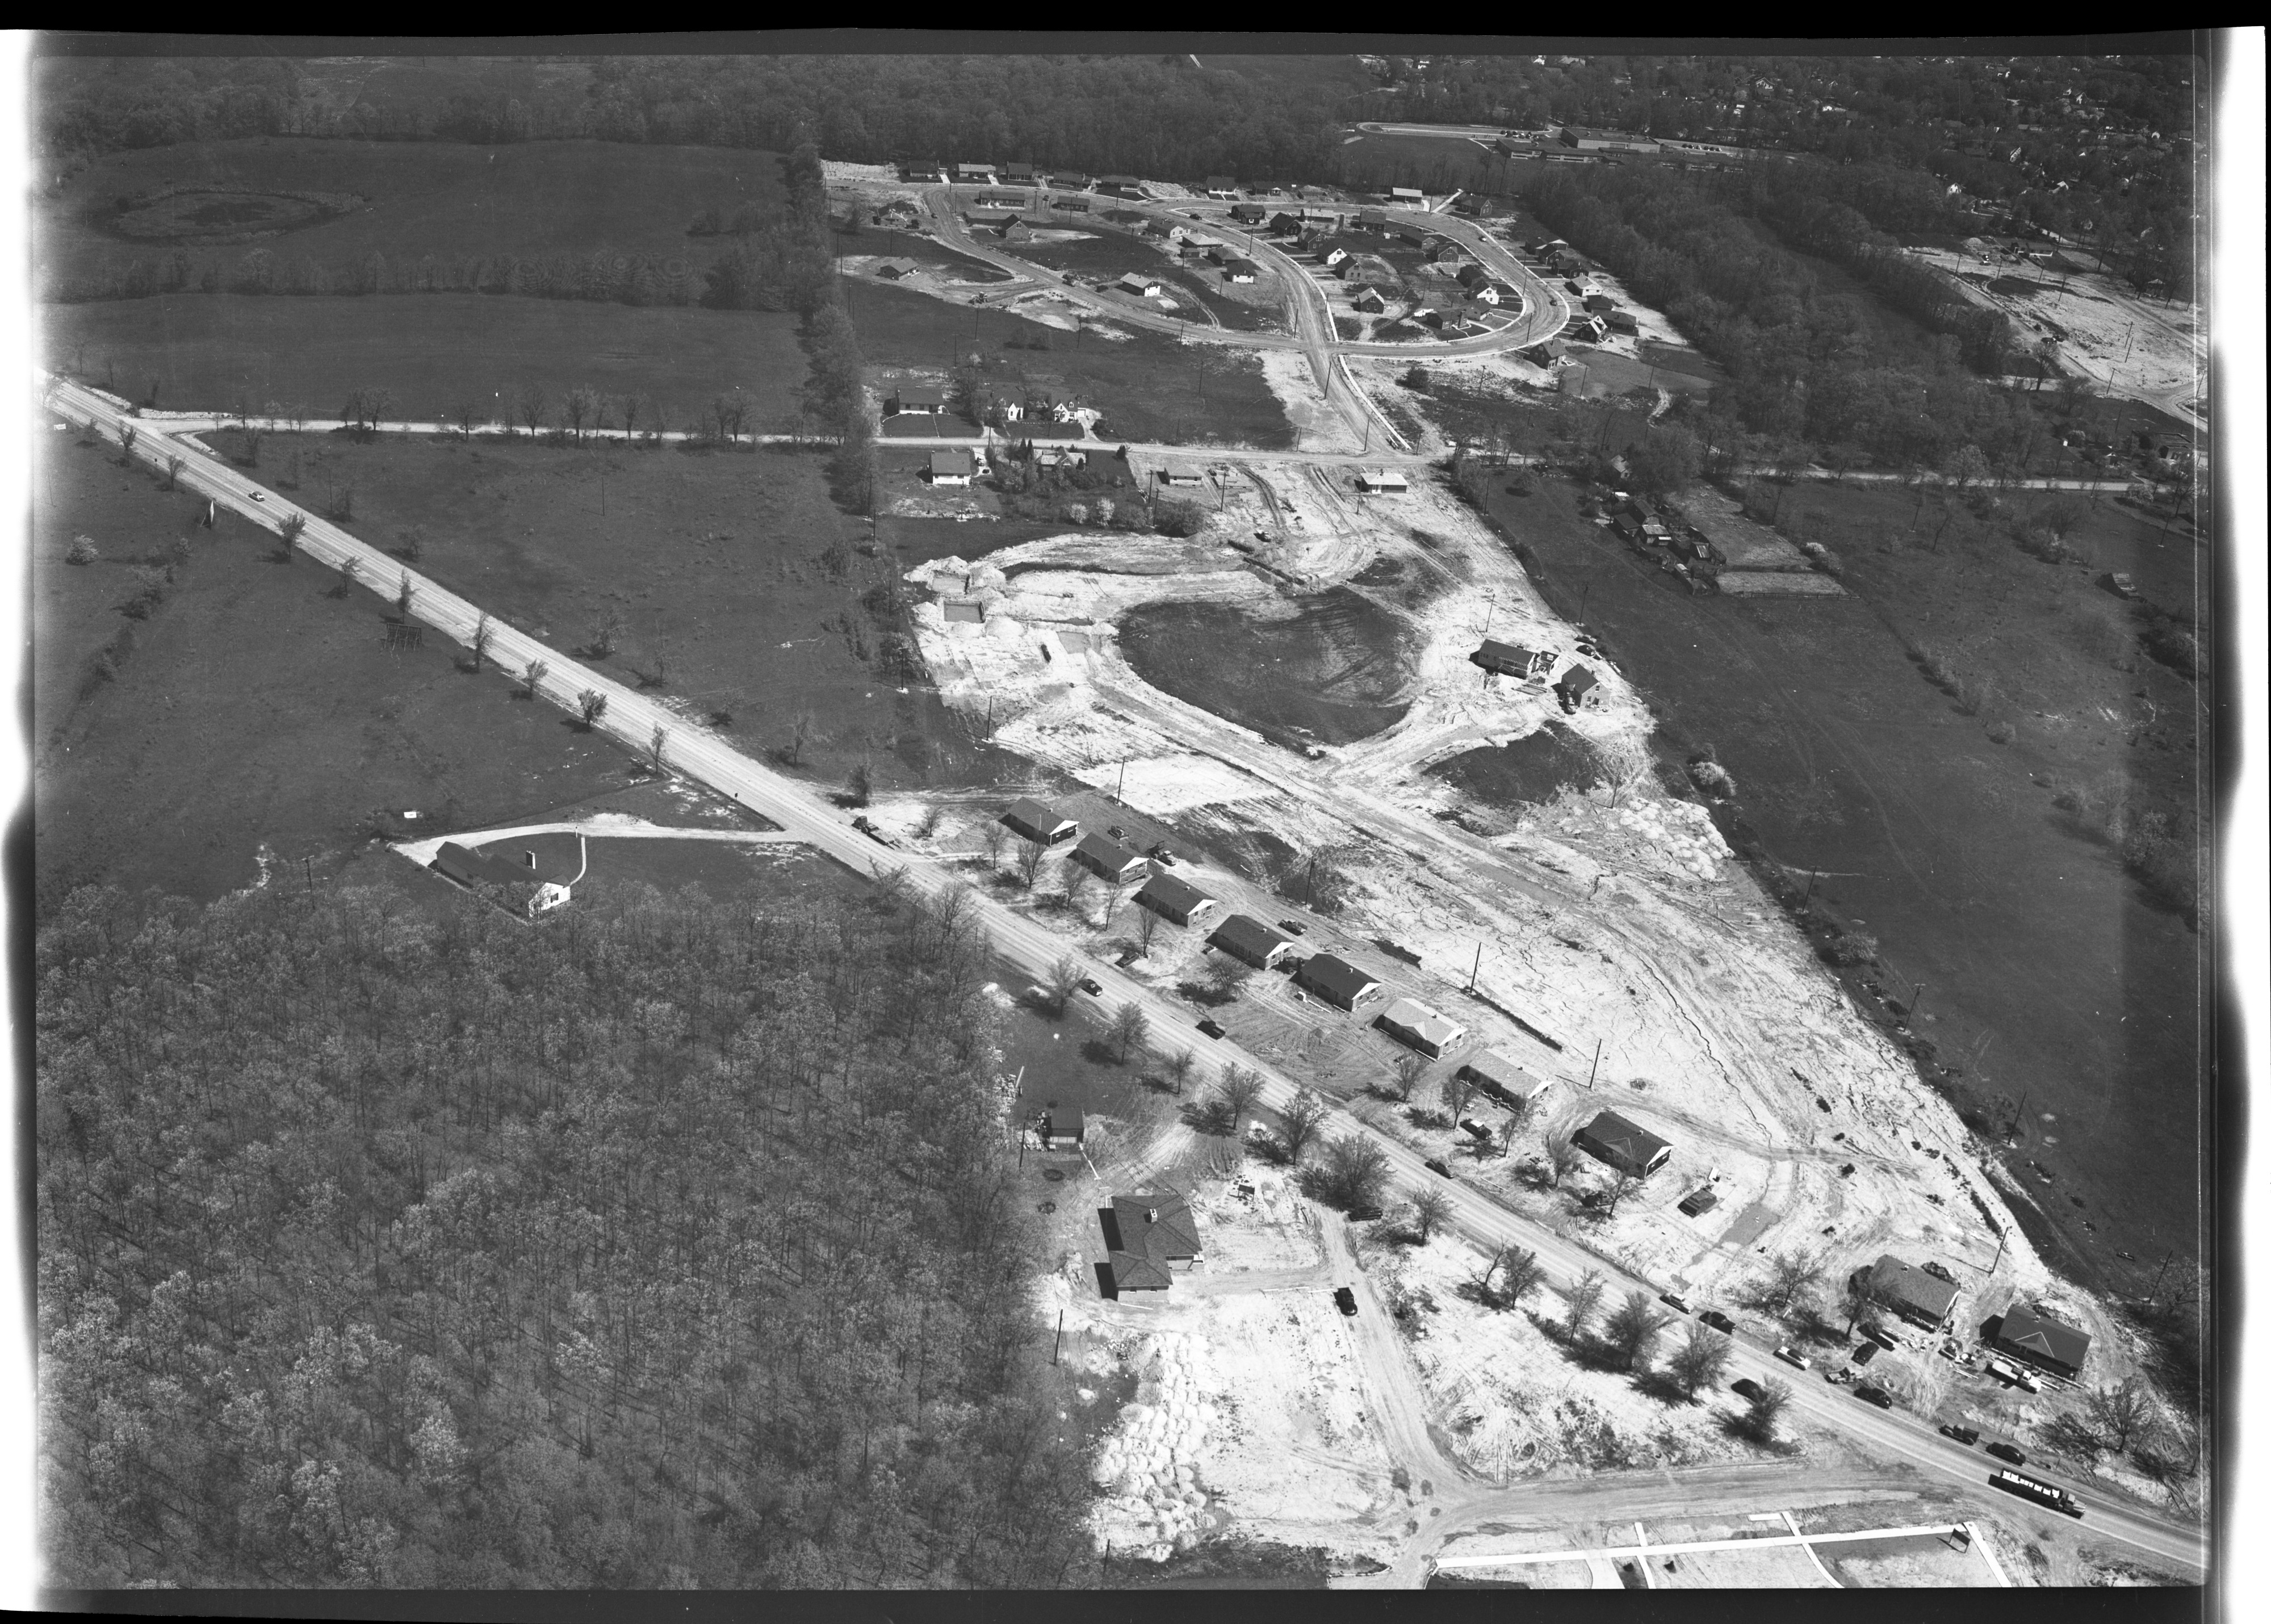 Building Area near Stadium and Pauline Blvds, May 1953 image